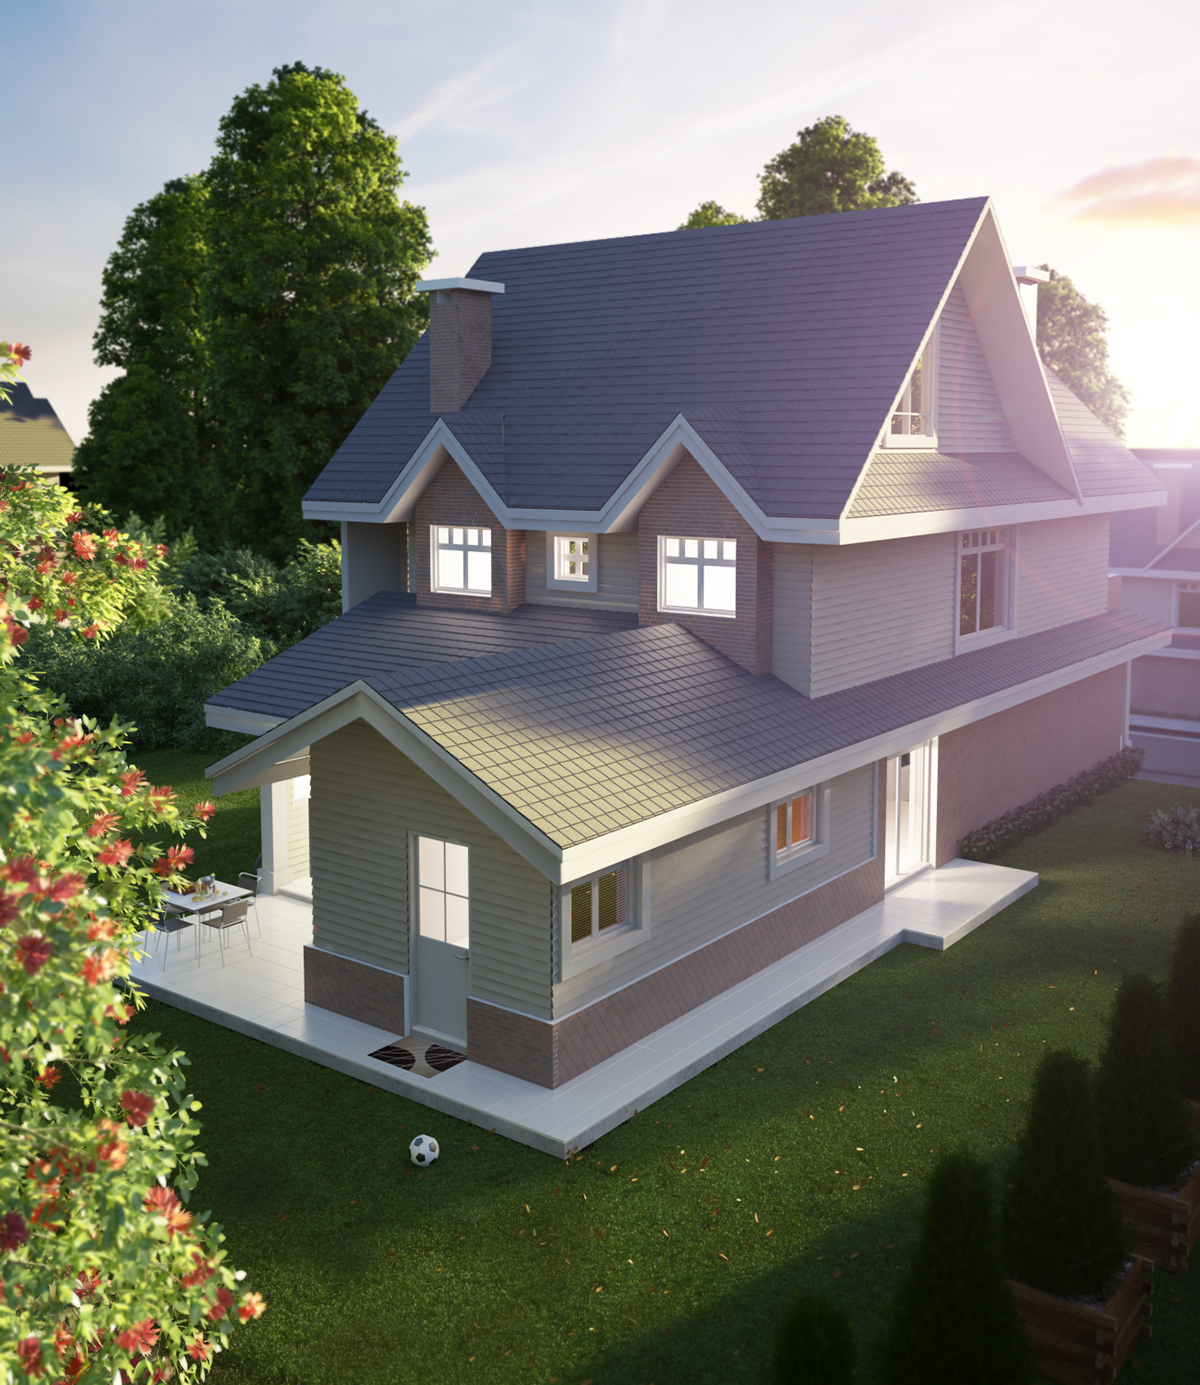 House Exterior Visualization